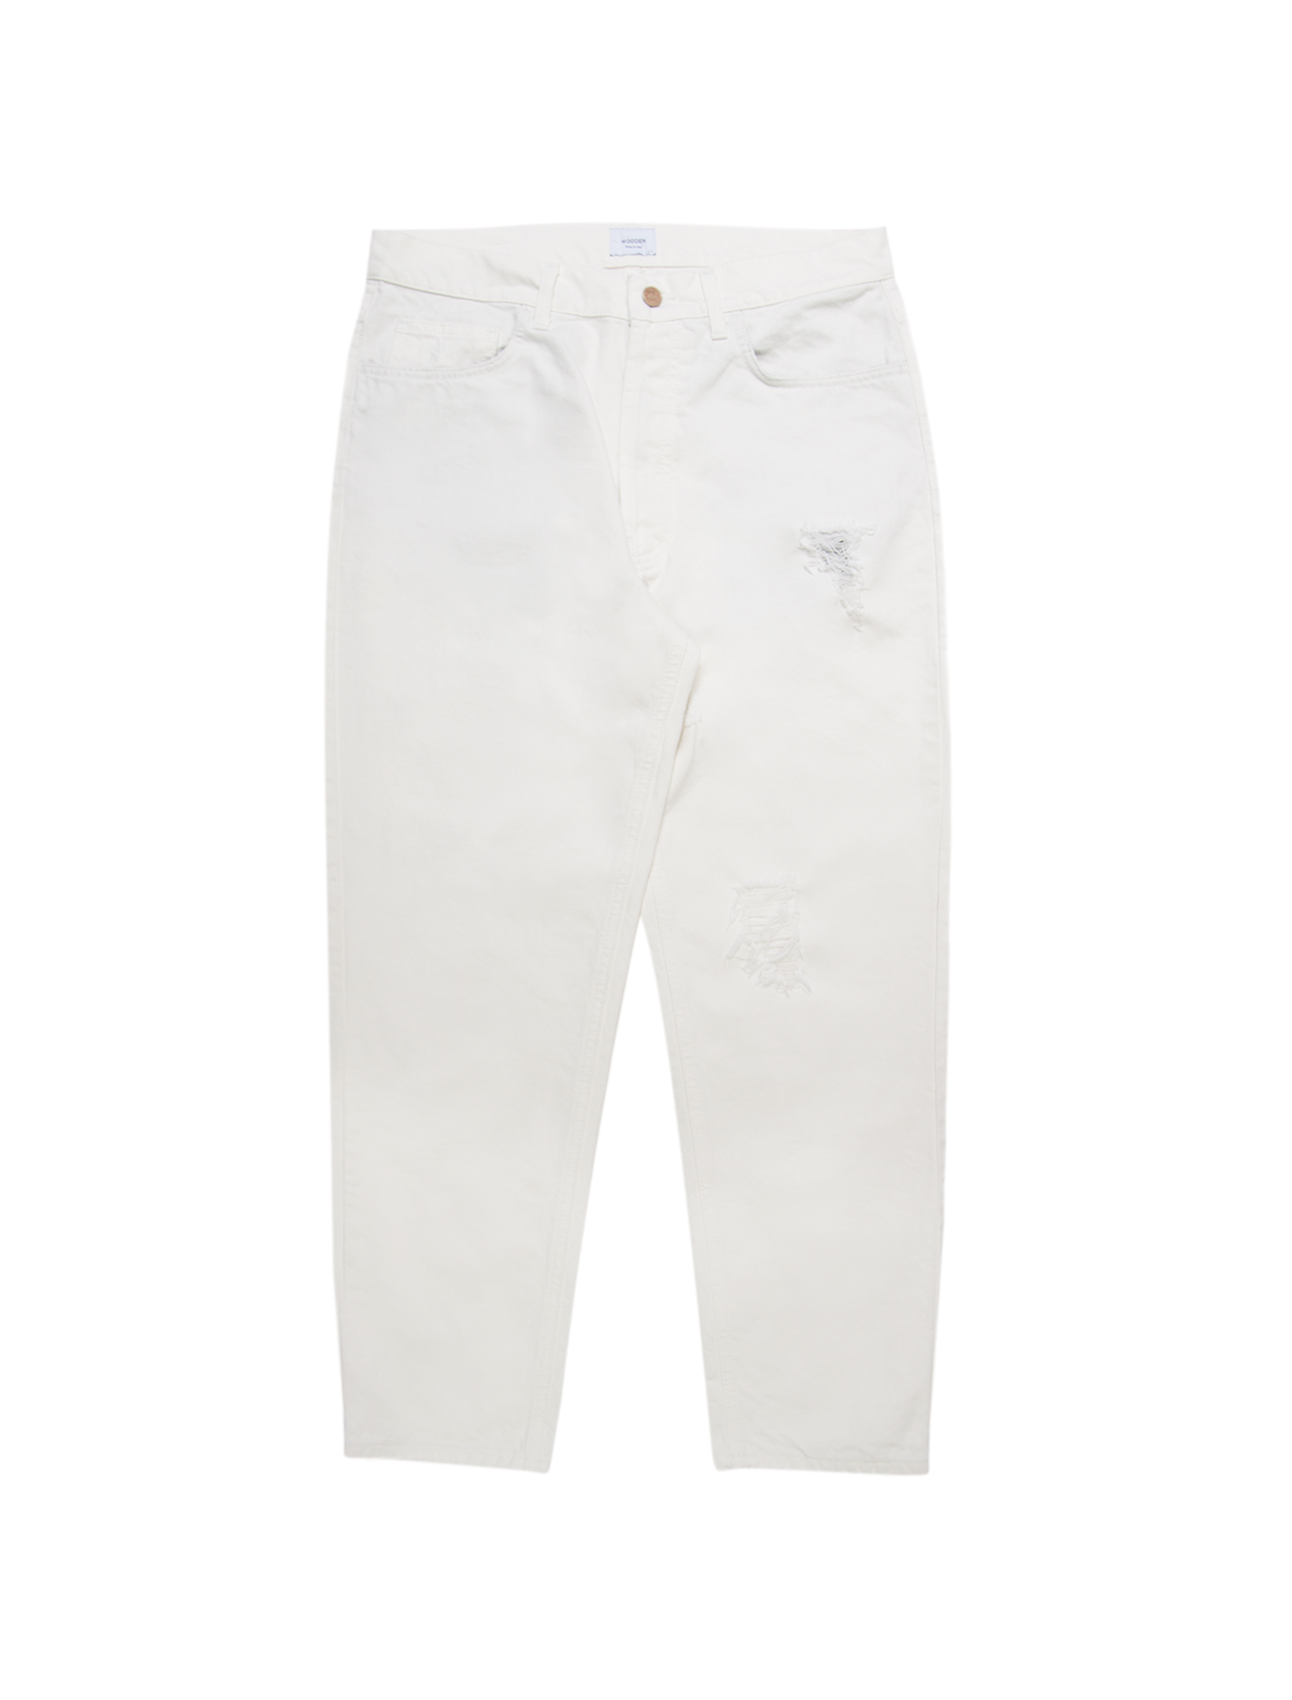 Jeans Replica '11 Broken White | Wooden Store